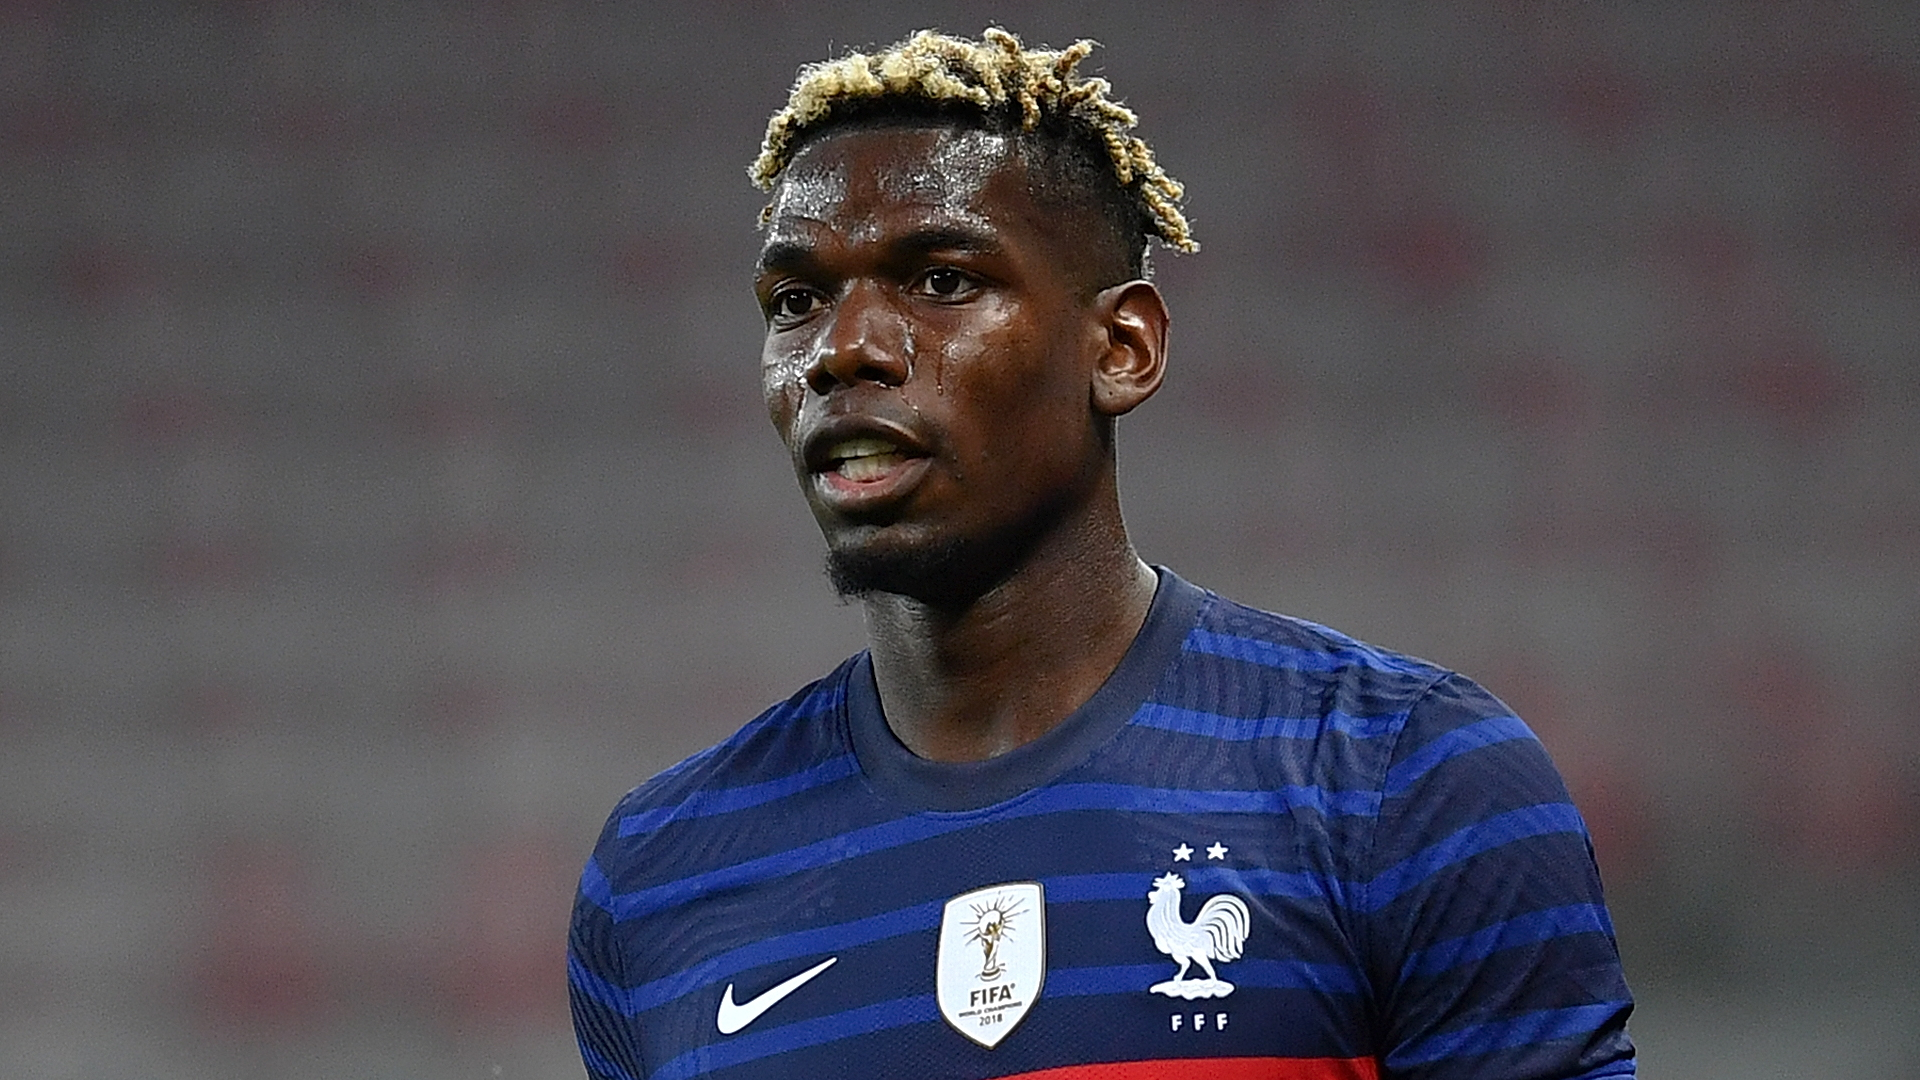 'Pogba lacks discipline defensively' - Man Utd star's 'maturity' questioned by Keane after France crash out of Euro 2020